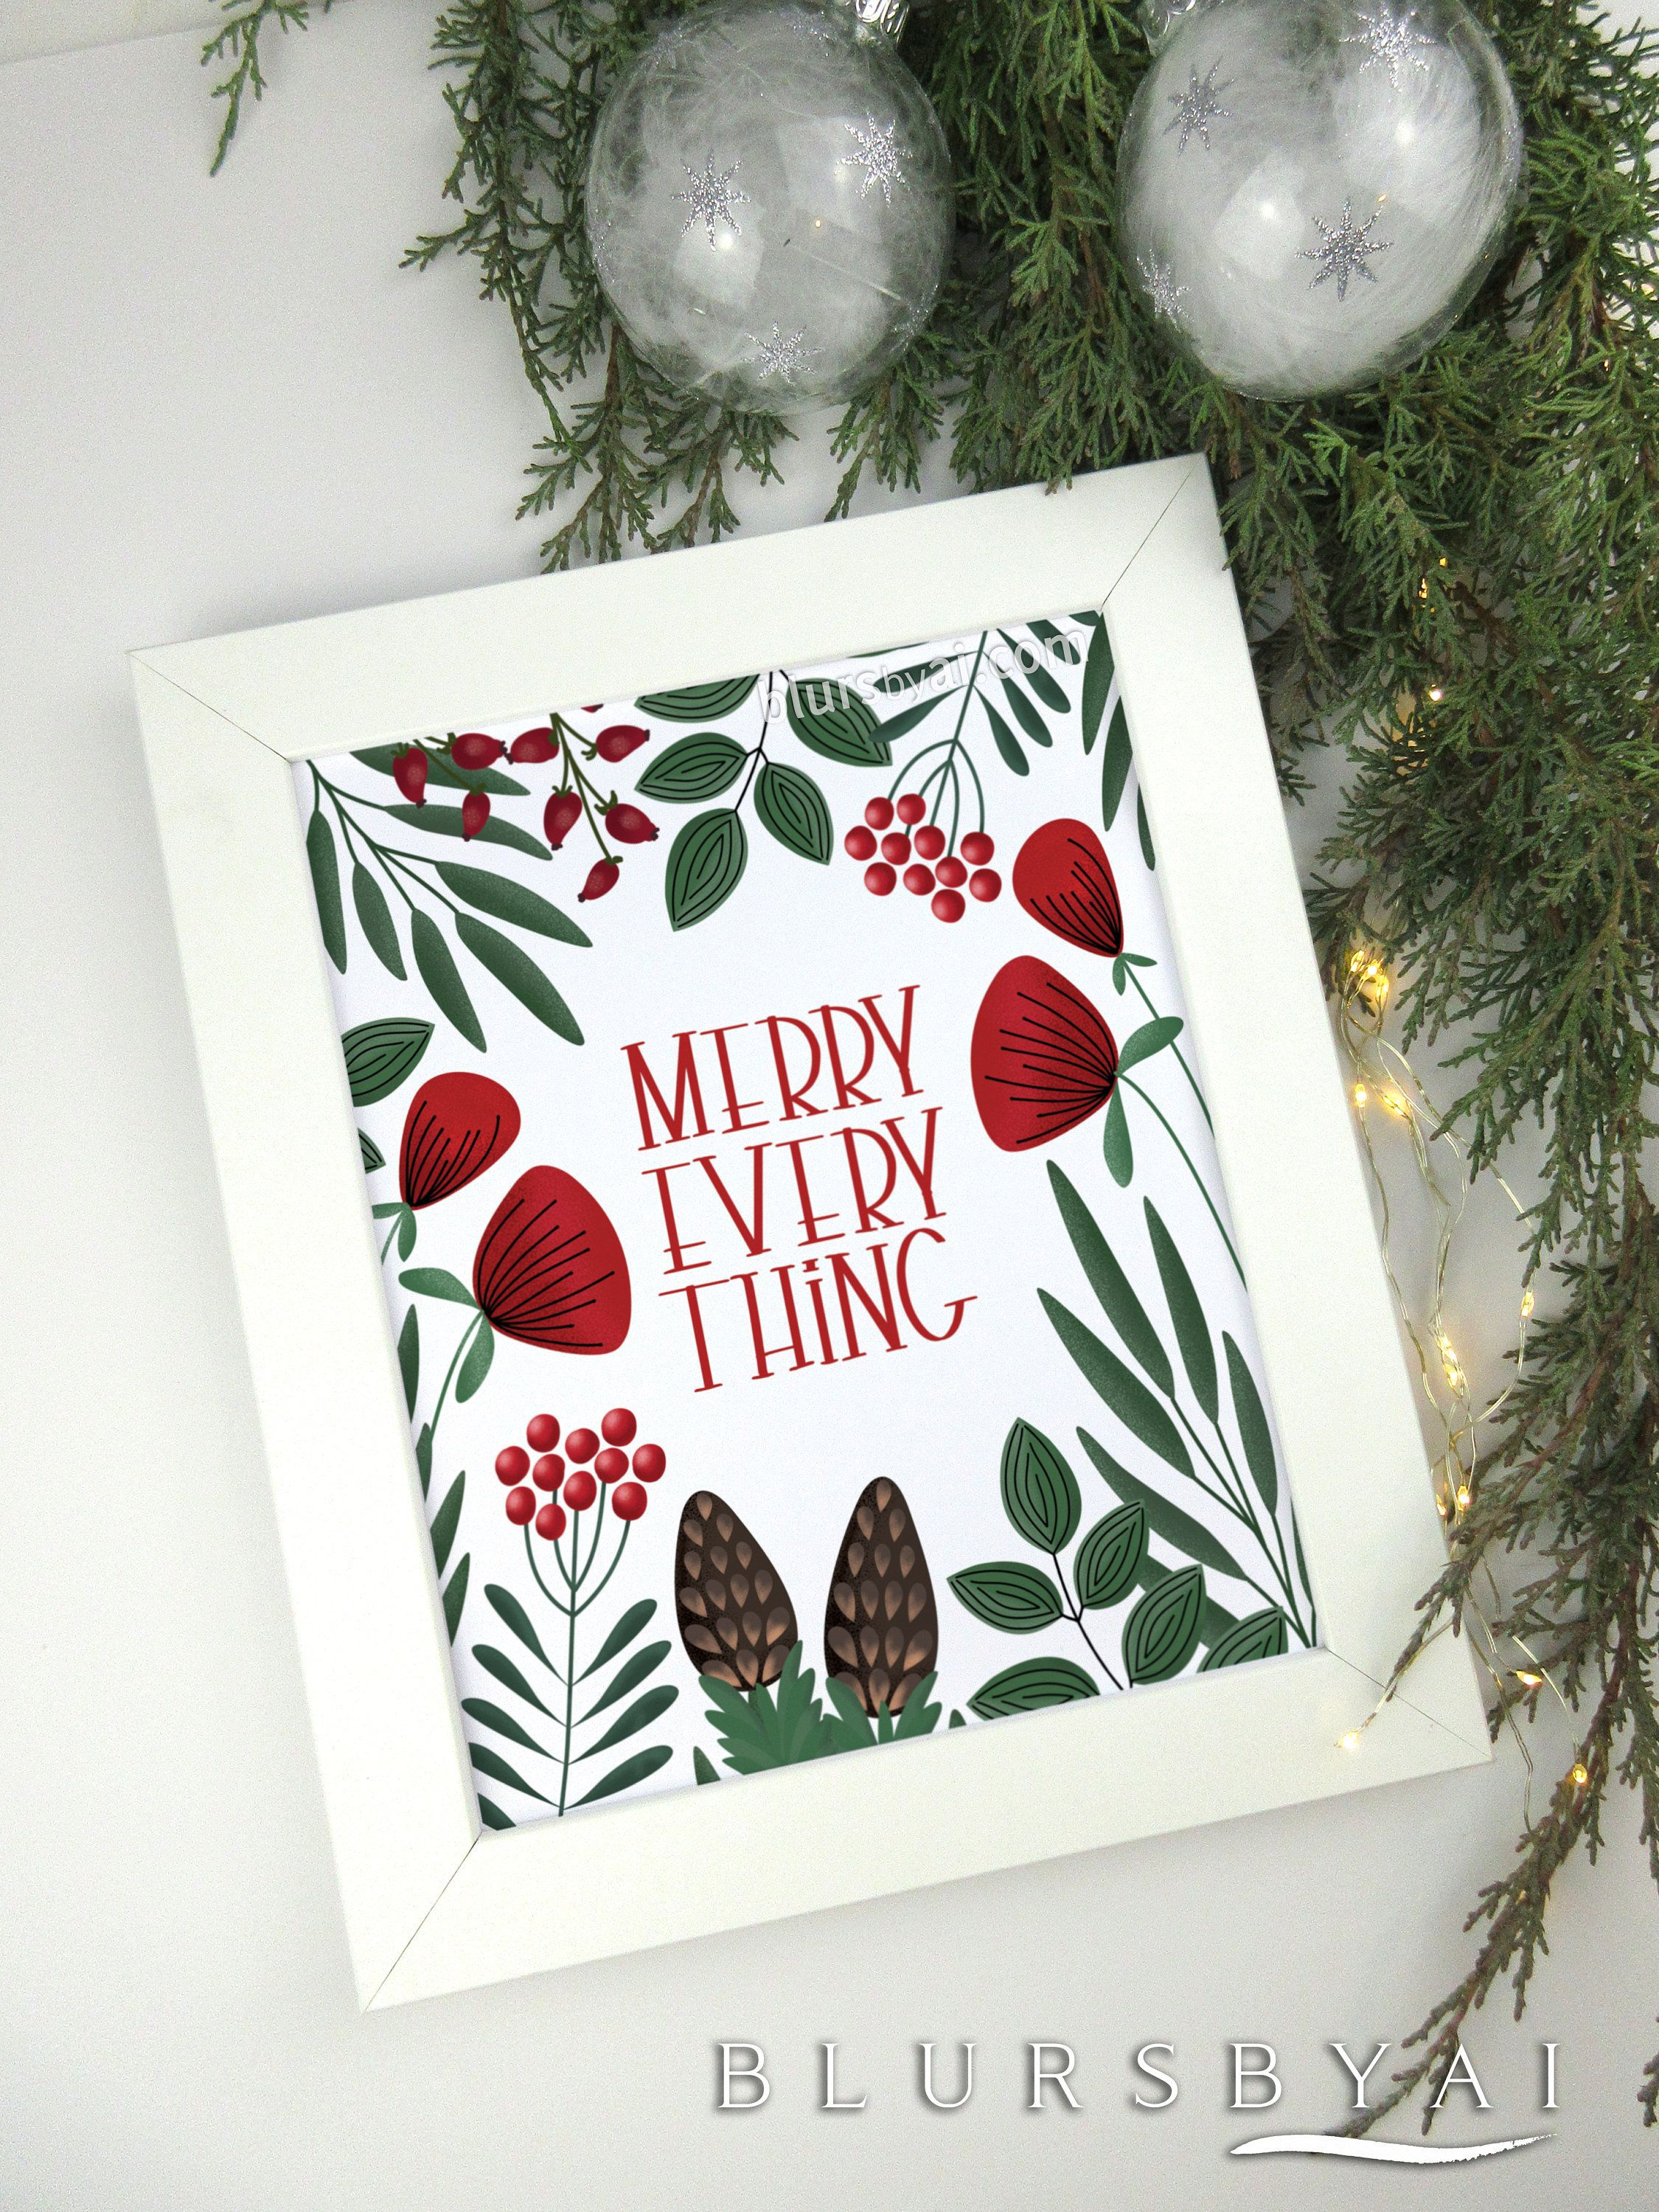 Christmas Decorations Christmas Printable Floral Scandinavian Style Mid Century Modern Merry Holiday Home Decor Floral Christmas Tree Christmas Decorations